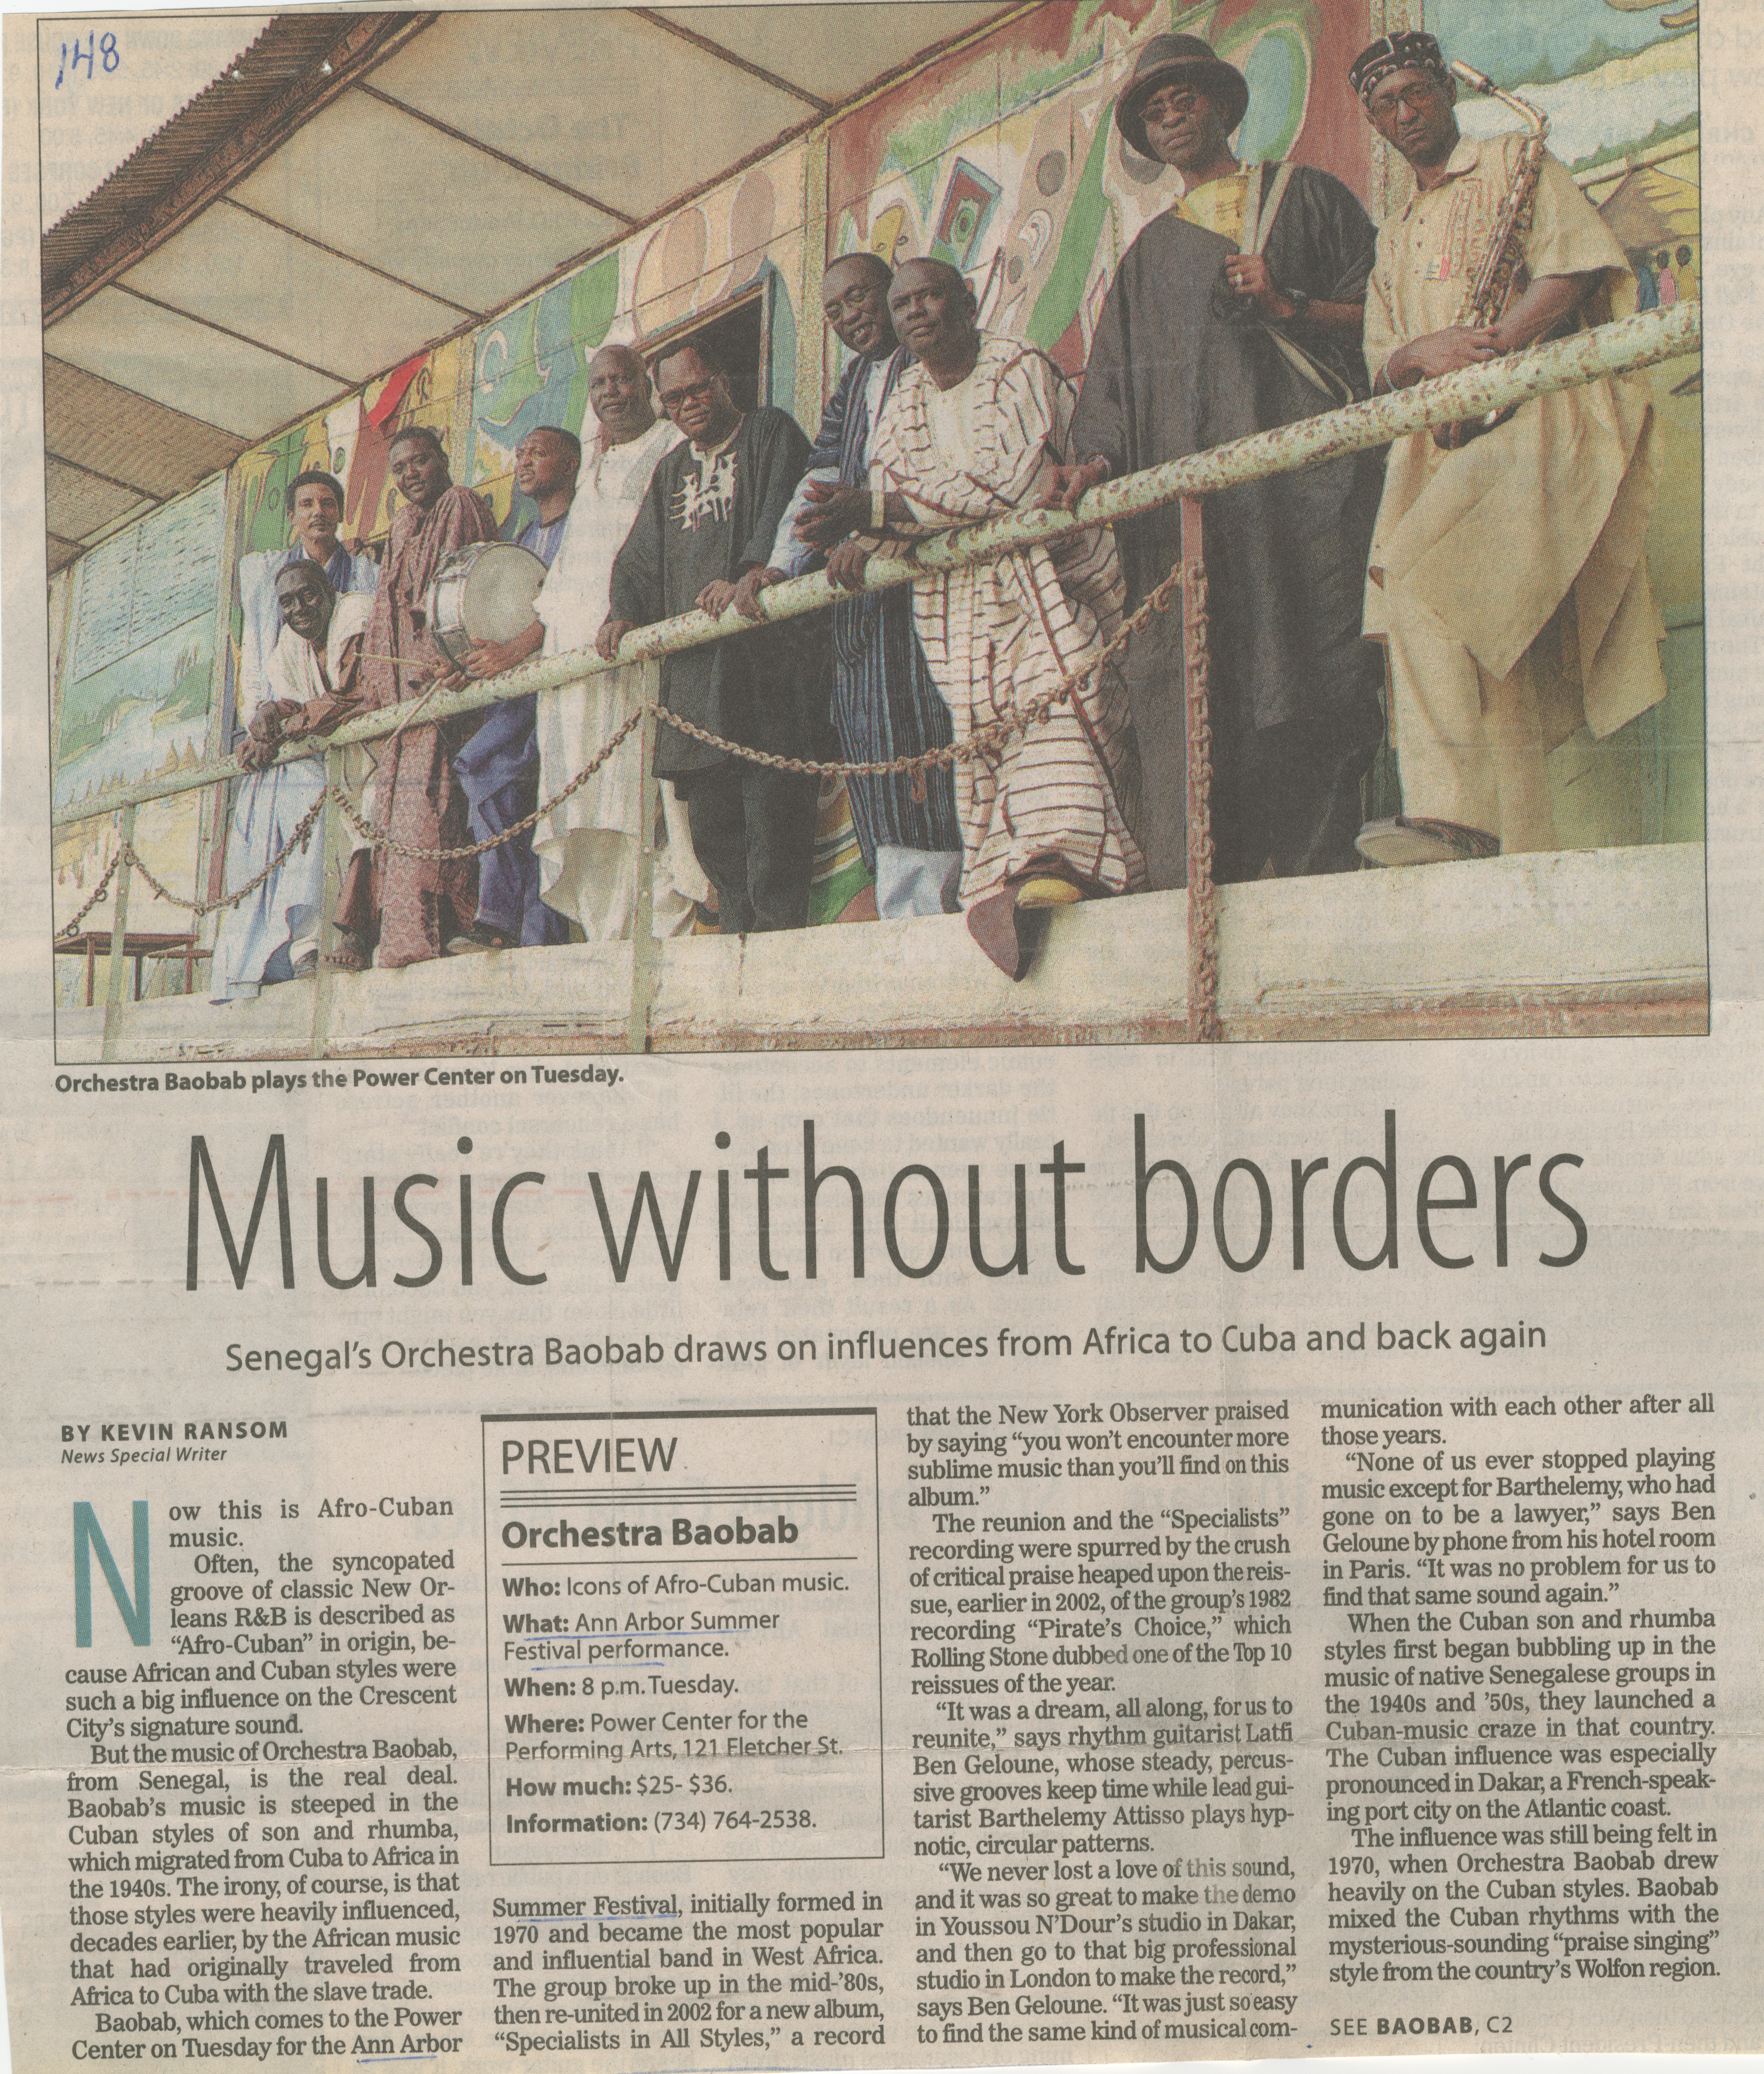 Music without borders image